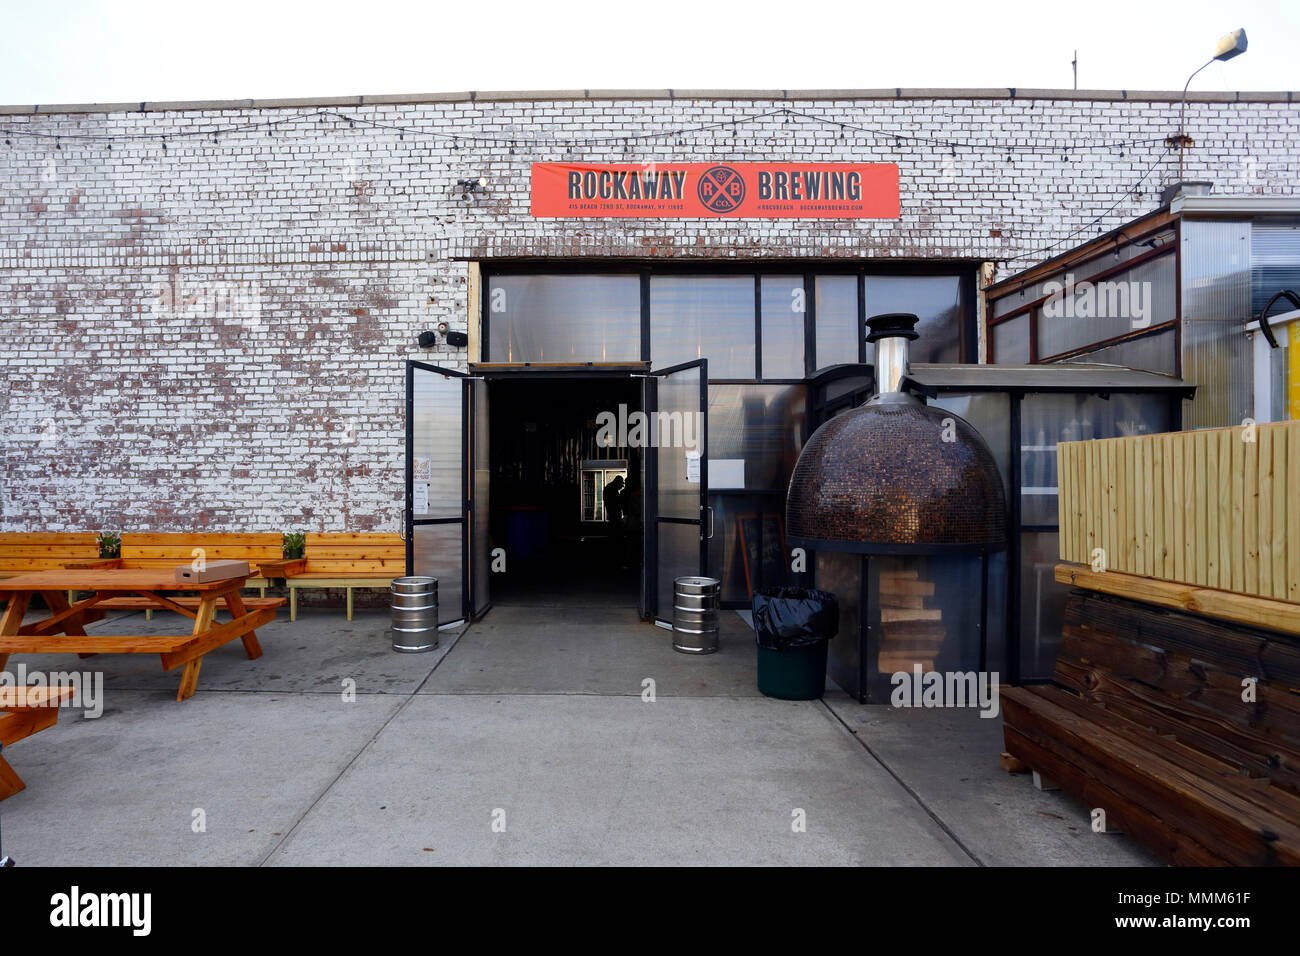 Rockaway Brewing Company Tap Room at 415 Beach 72nd, Arverne, NY - Stock Image